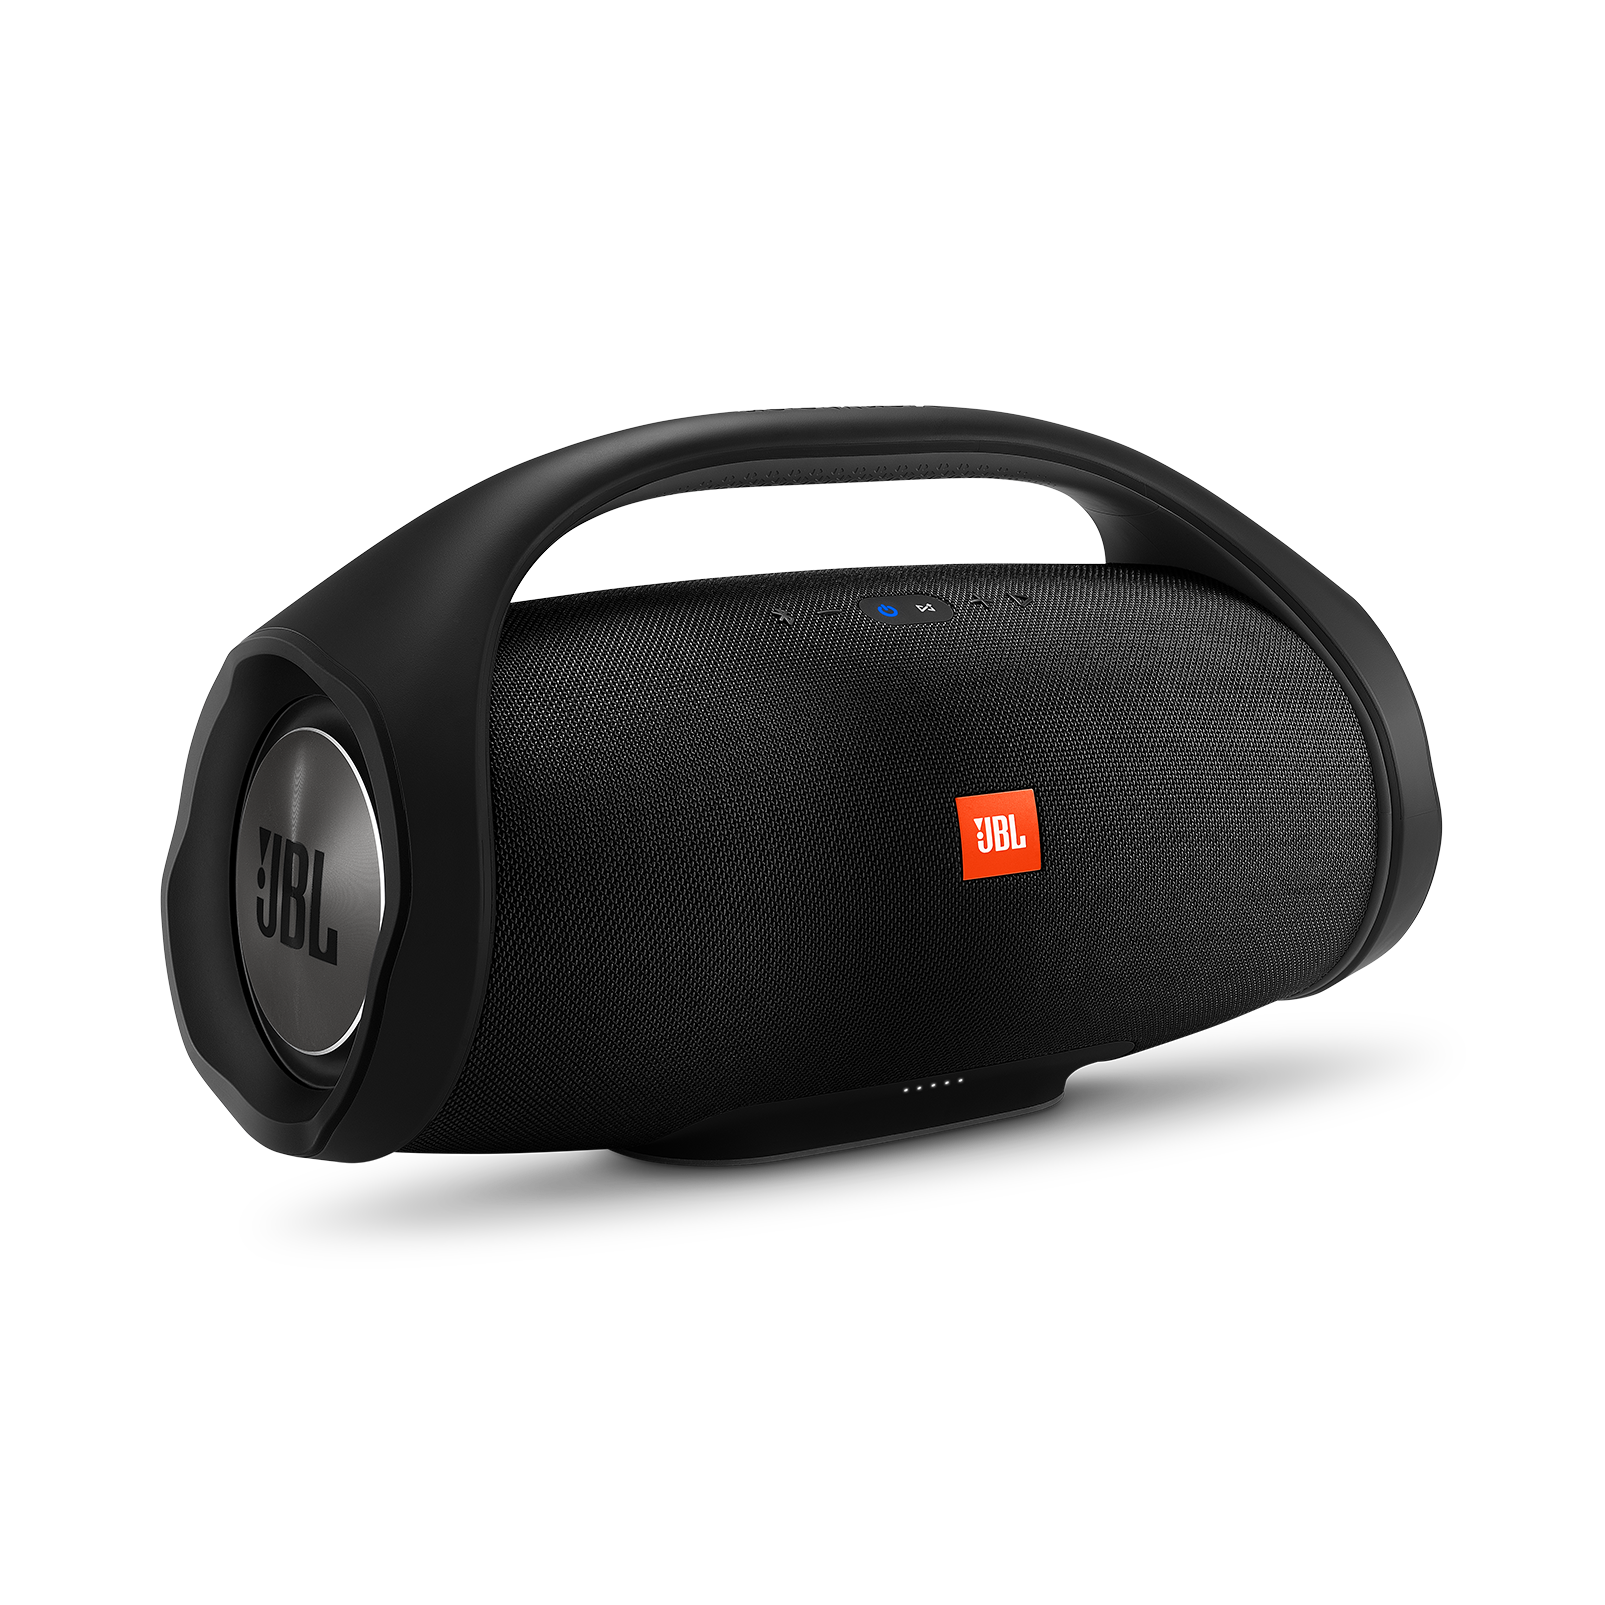 jbl boombox draagbare bluetooth luidspreker. Black Bedroom Furniture Sets. Home Design Ideas